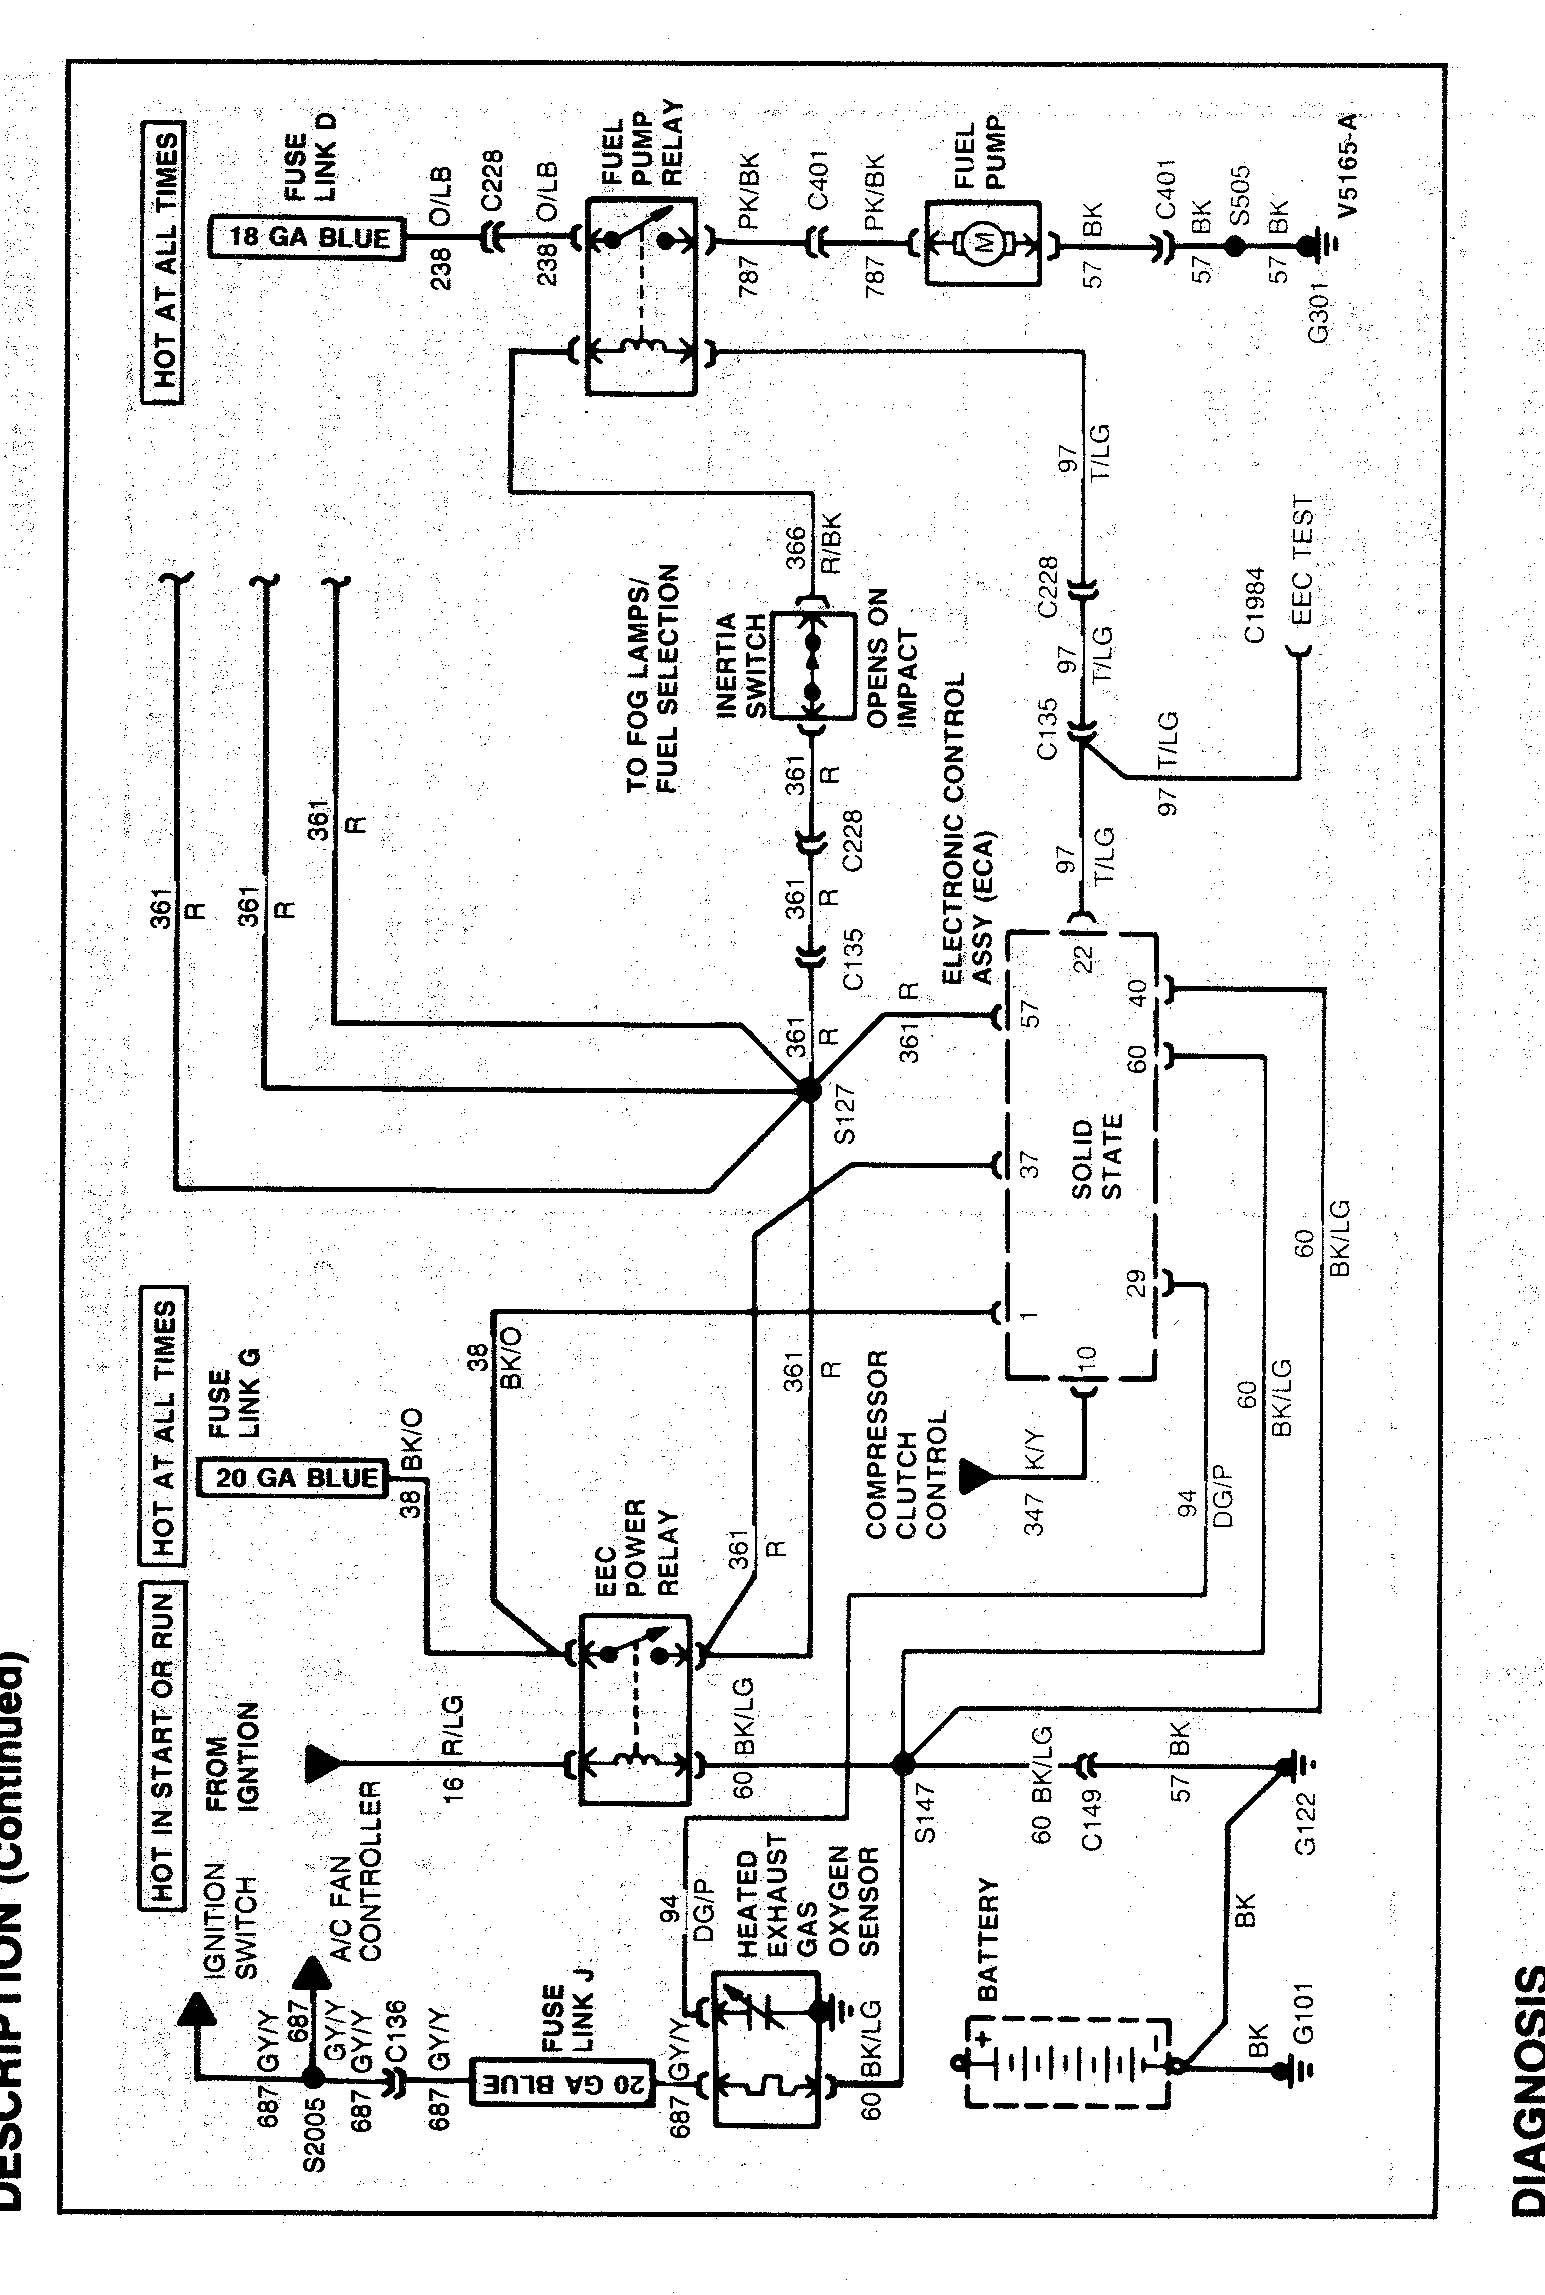 Ford Taurus Charging System Wiring Diagram In